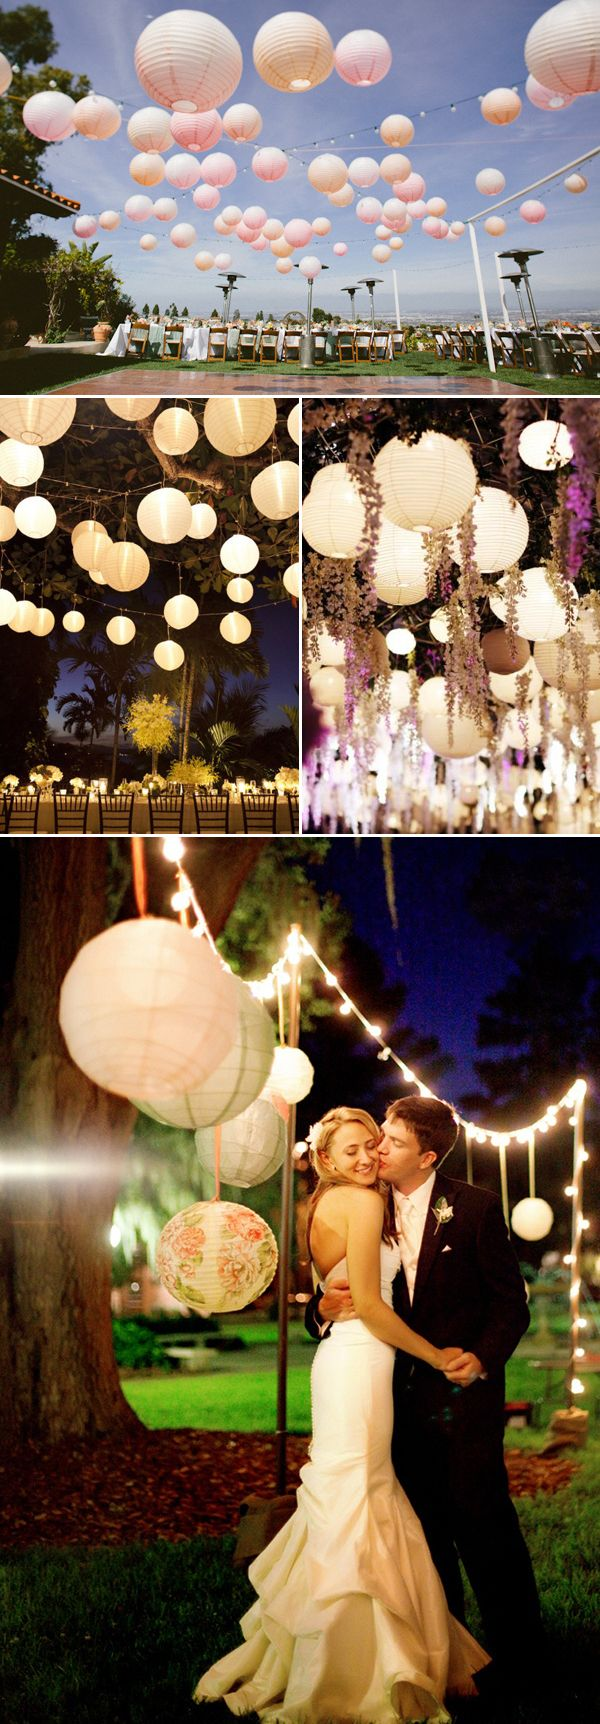 21 Lantern Wedding Decor Ideas - Night Scene